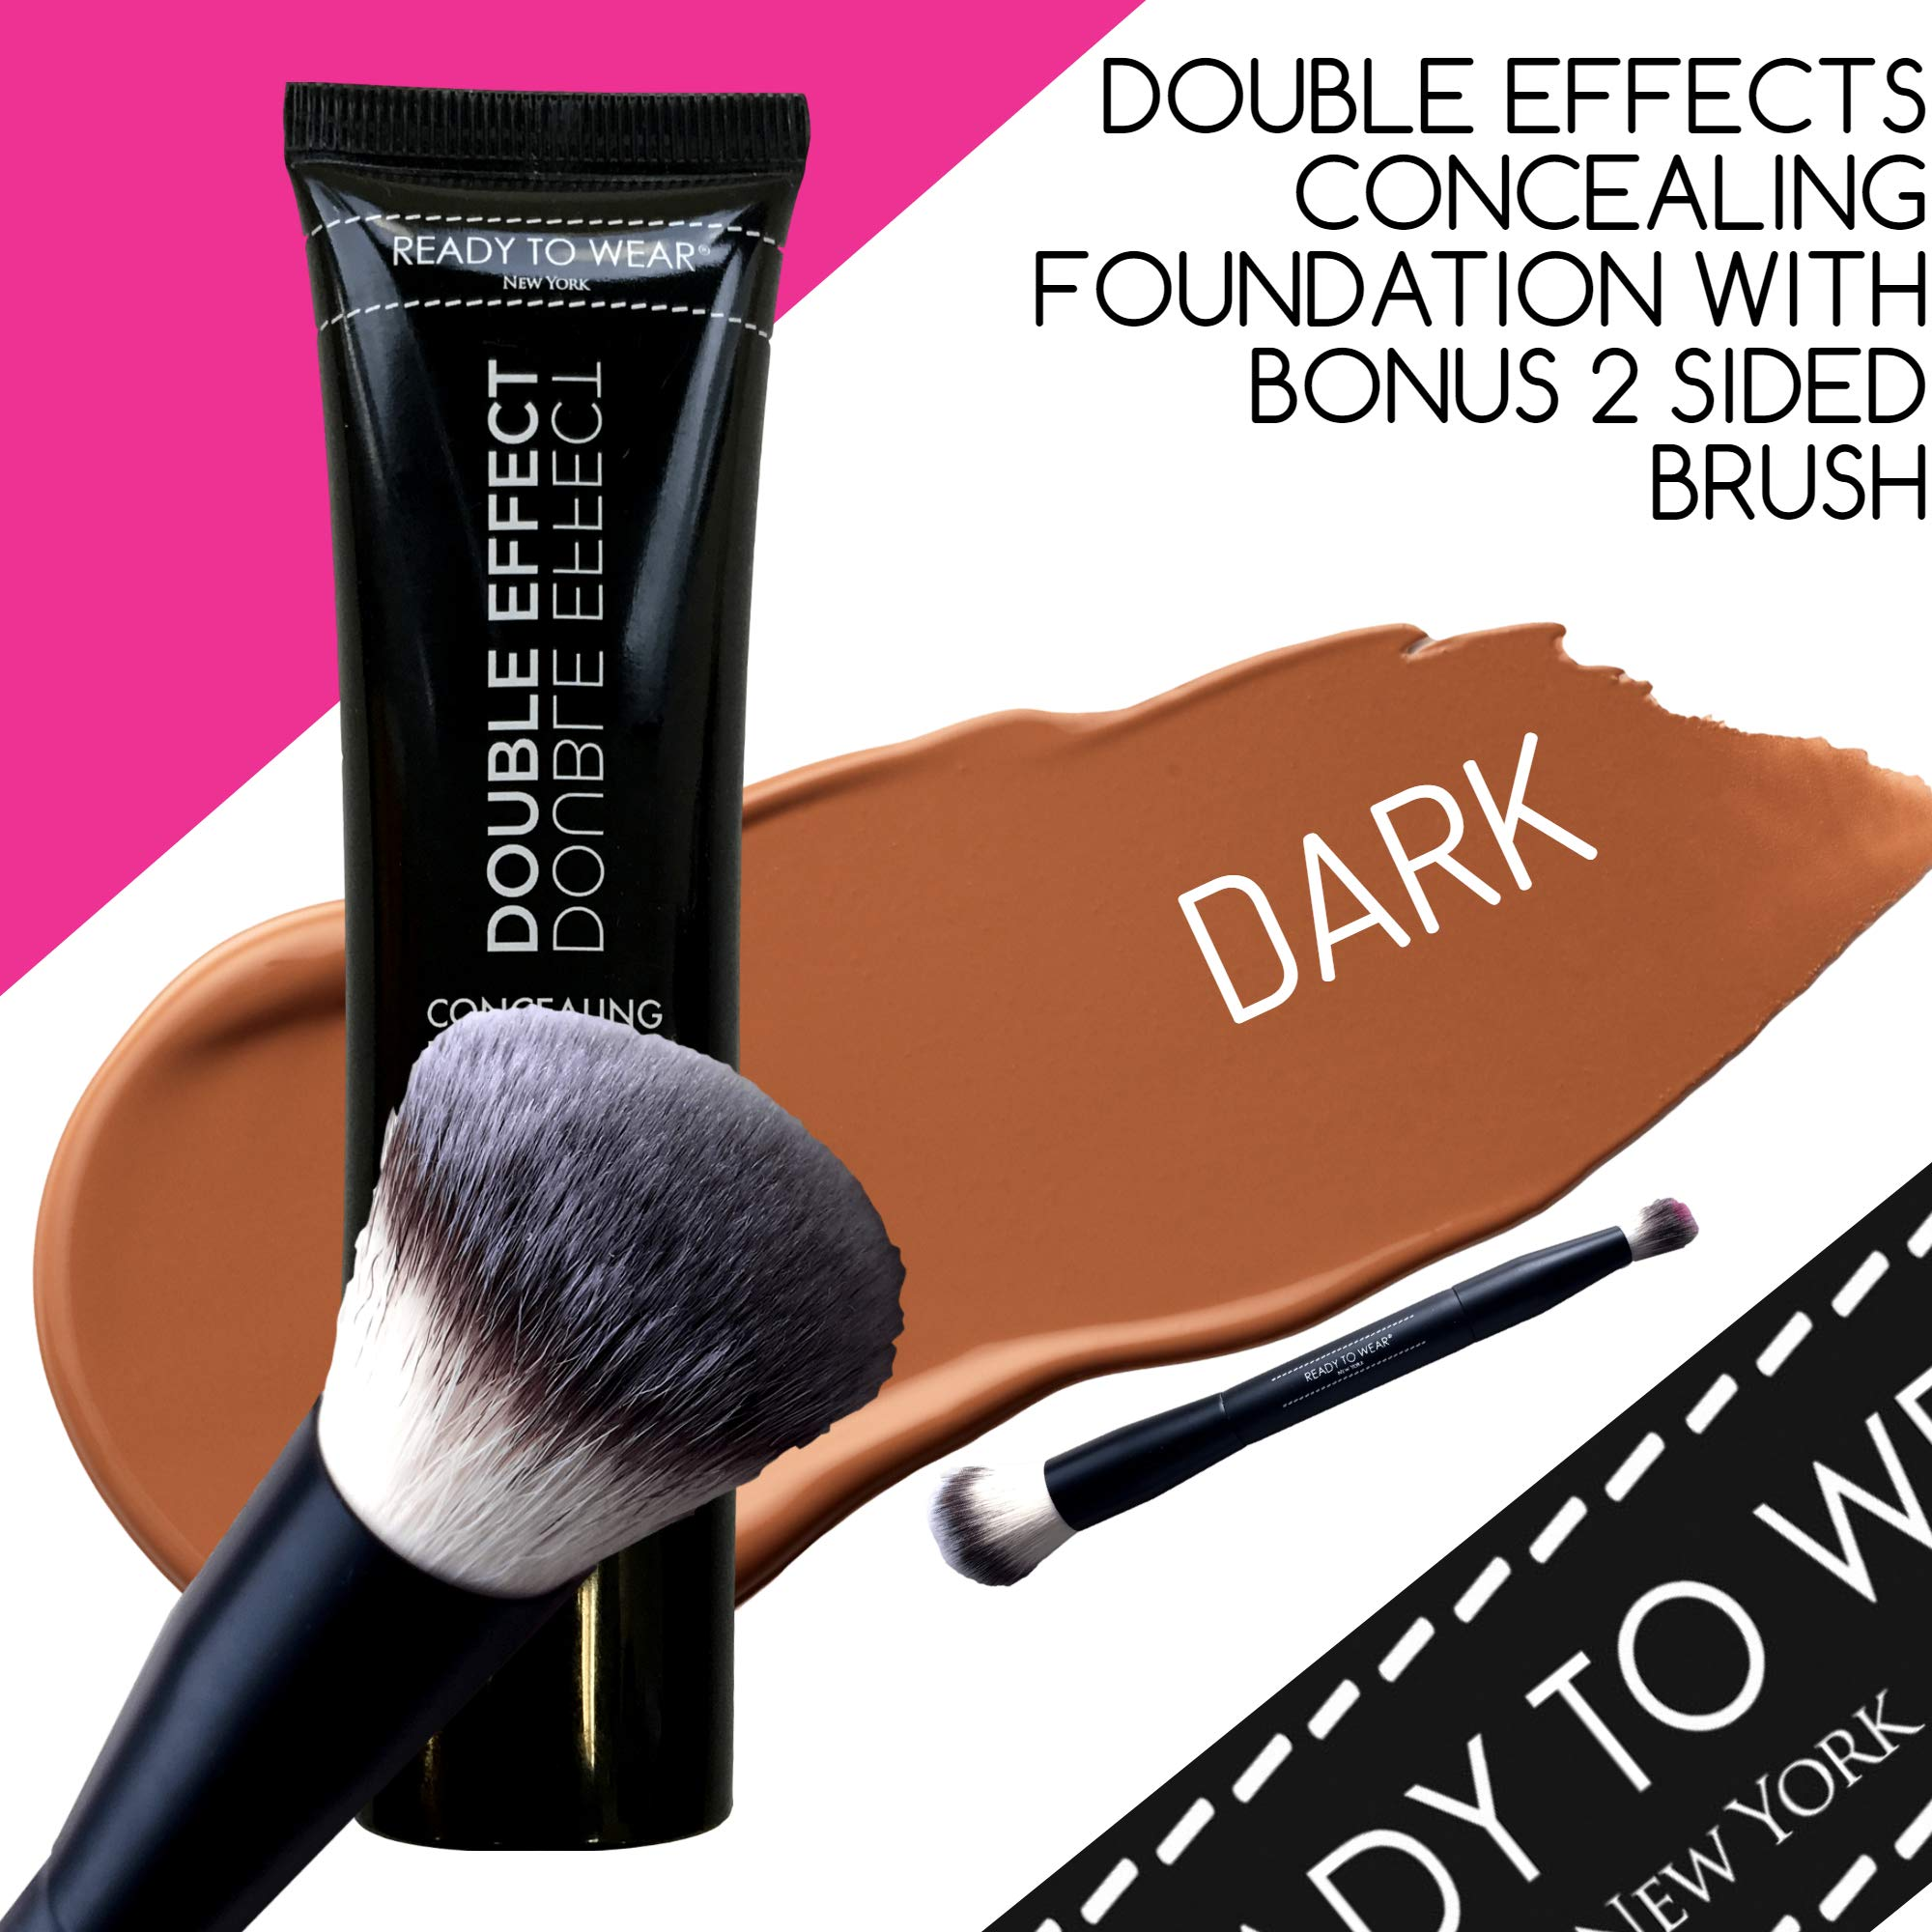 Ready To Wear DOUBLE EFFECT Concealing Foundation Made In Italy (DARK)